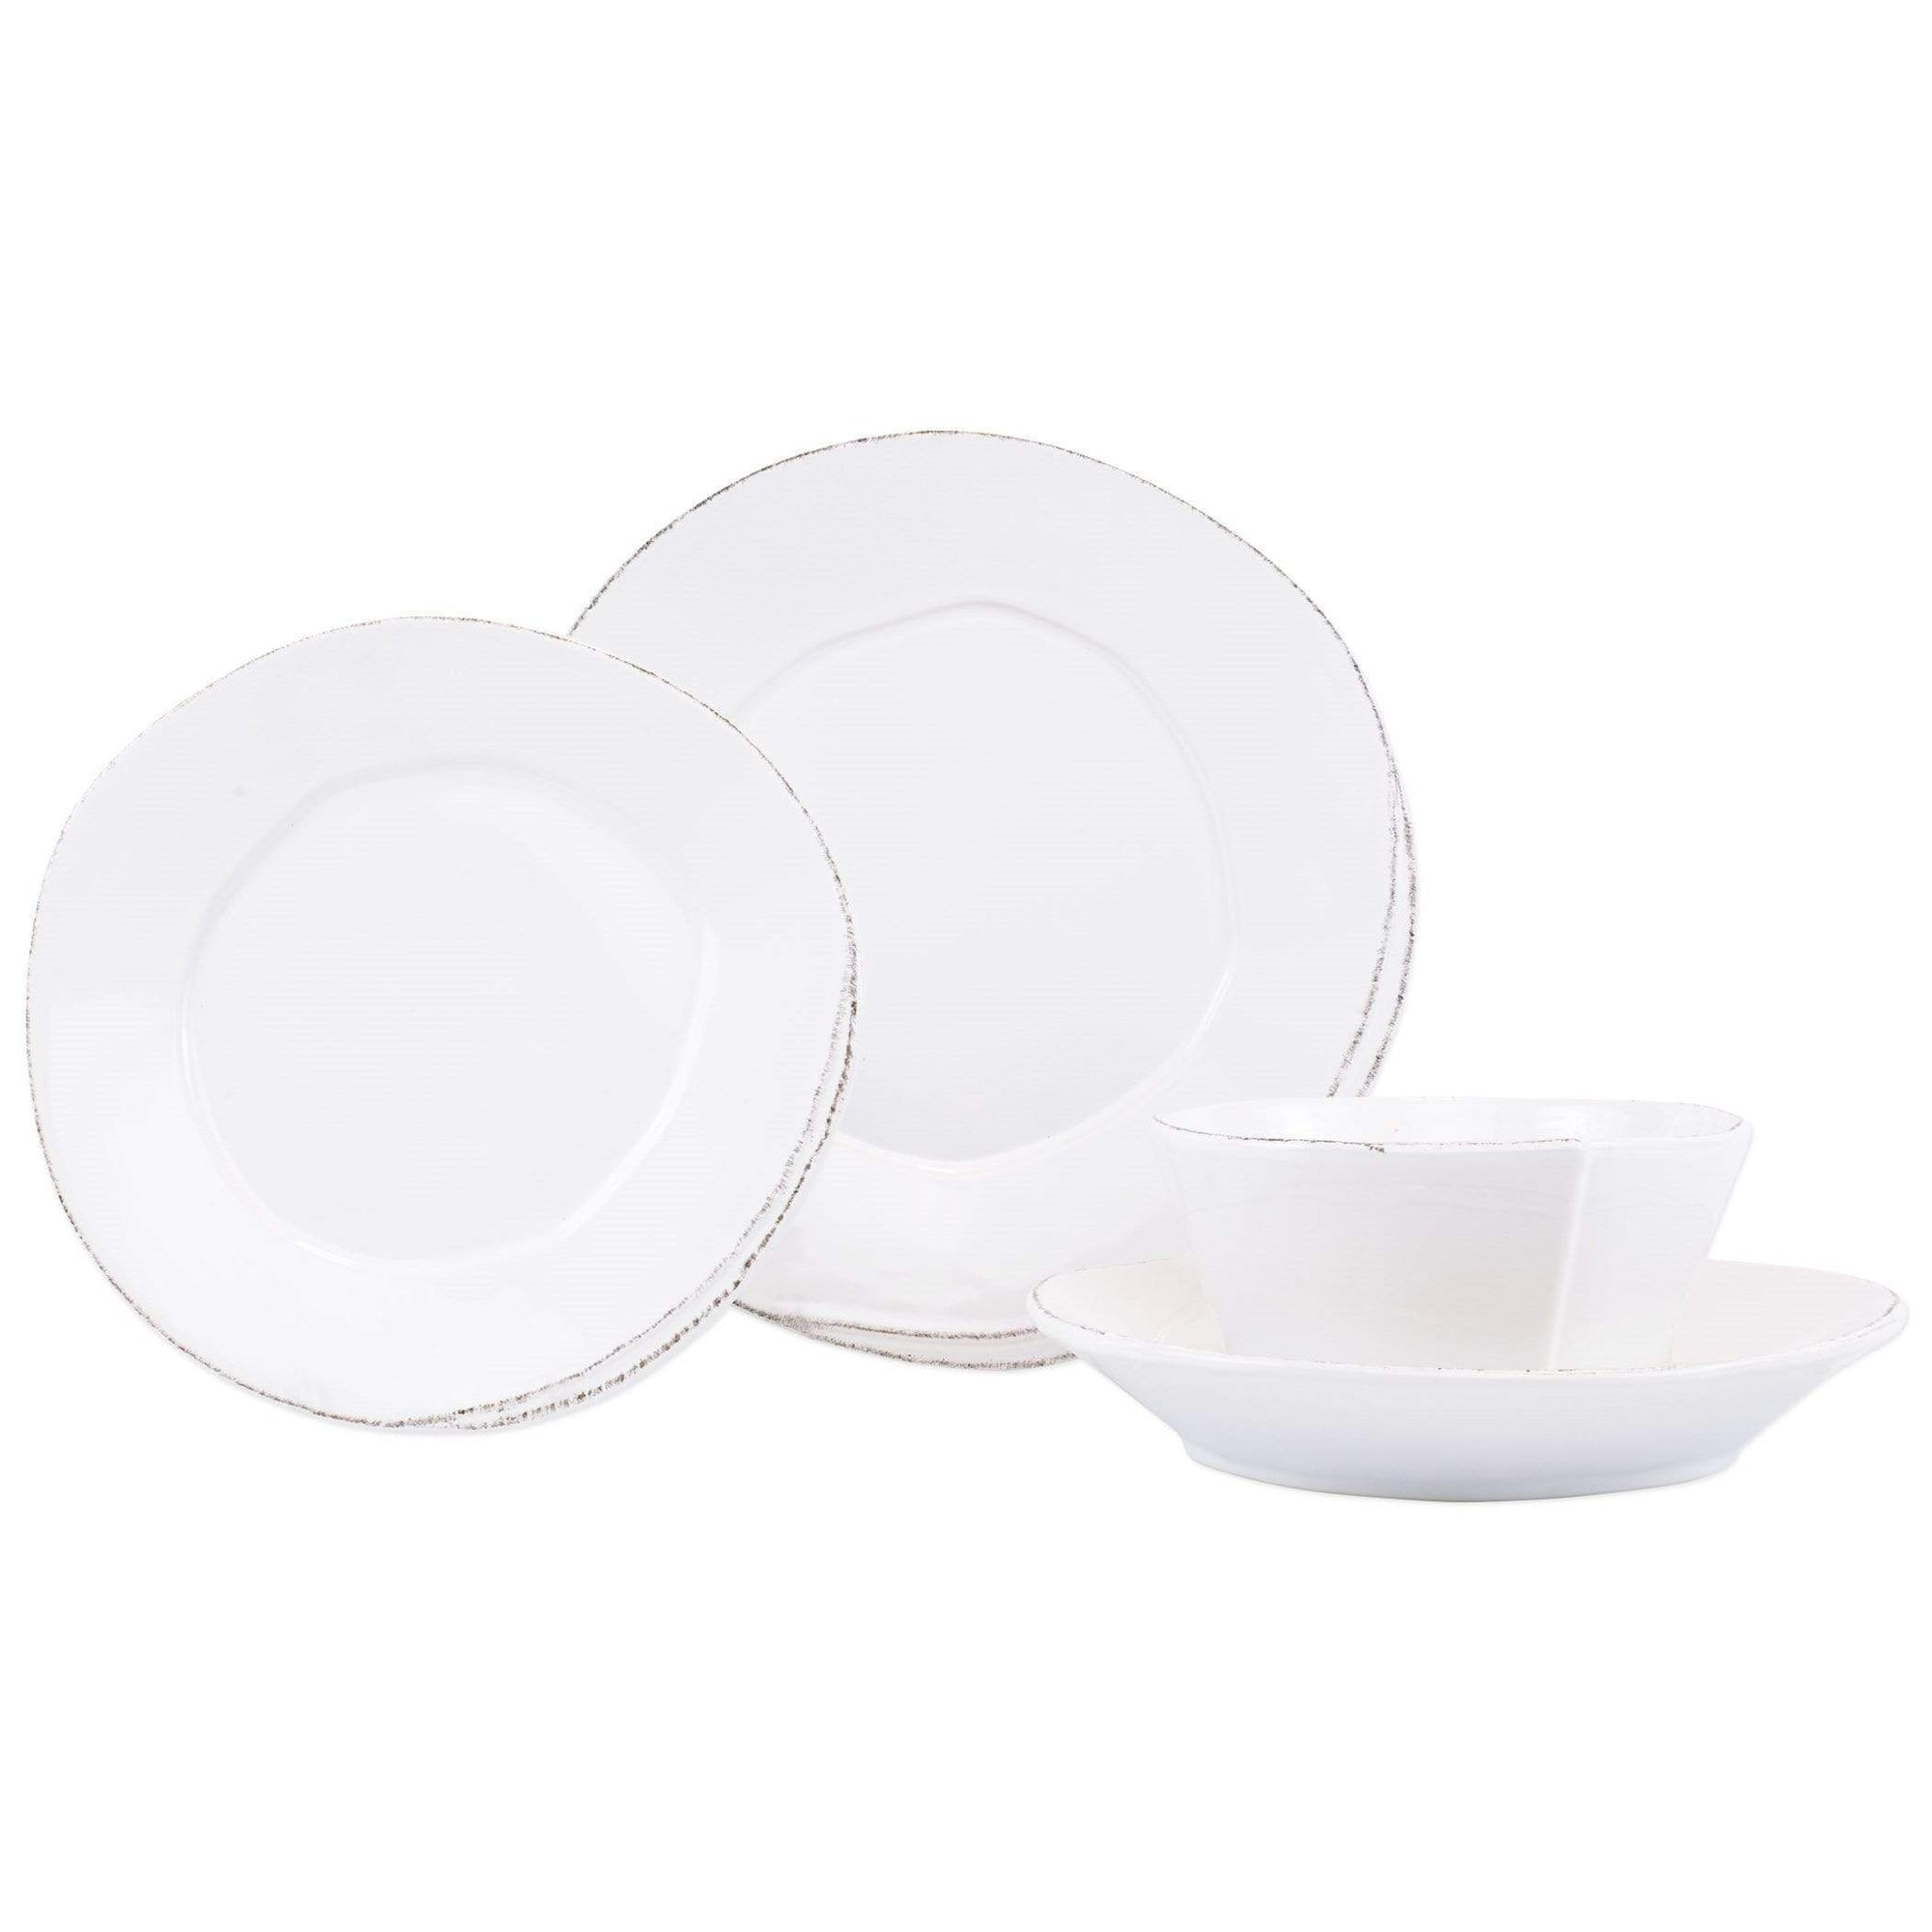 Vietri Vietri Lastra Four-Piece Place Setting - Available in 6 Colors White LAS-2600WS-4